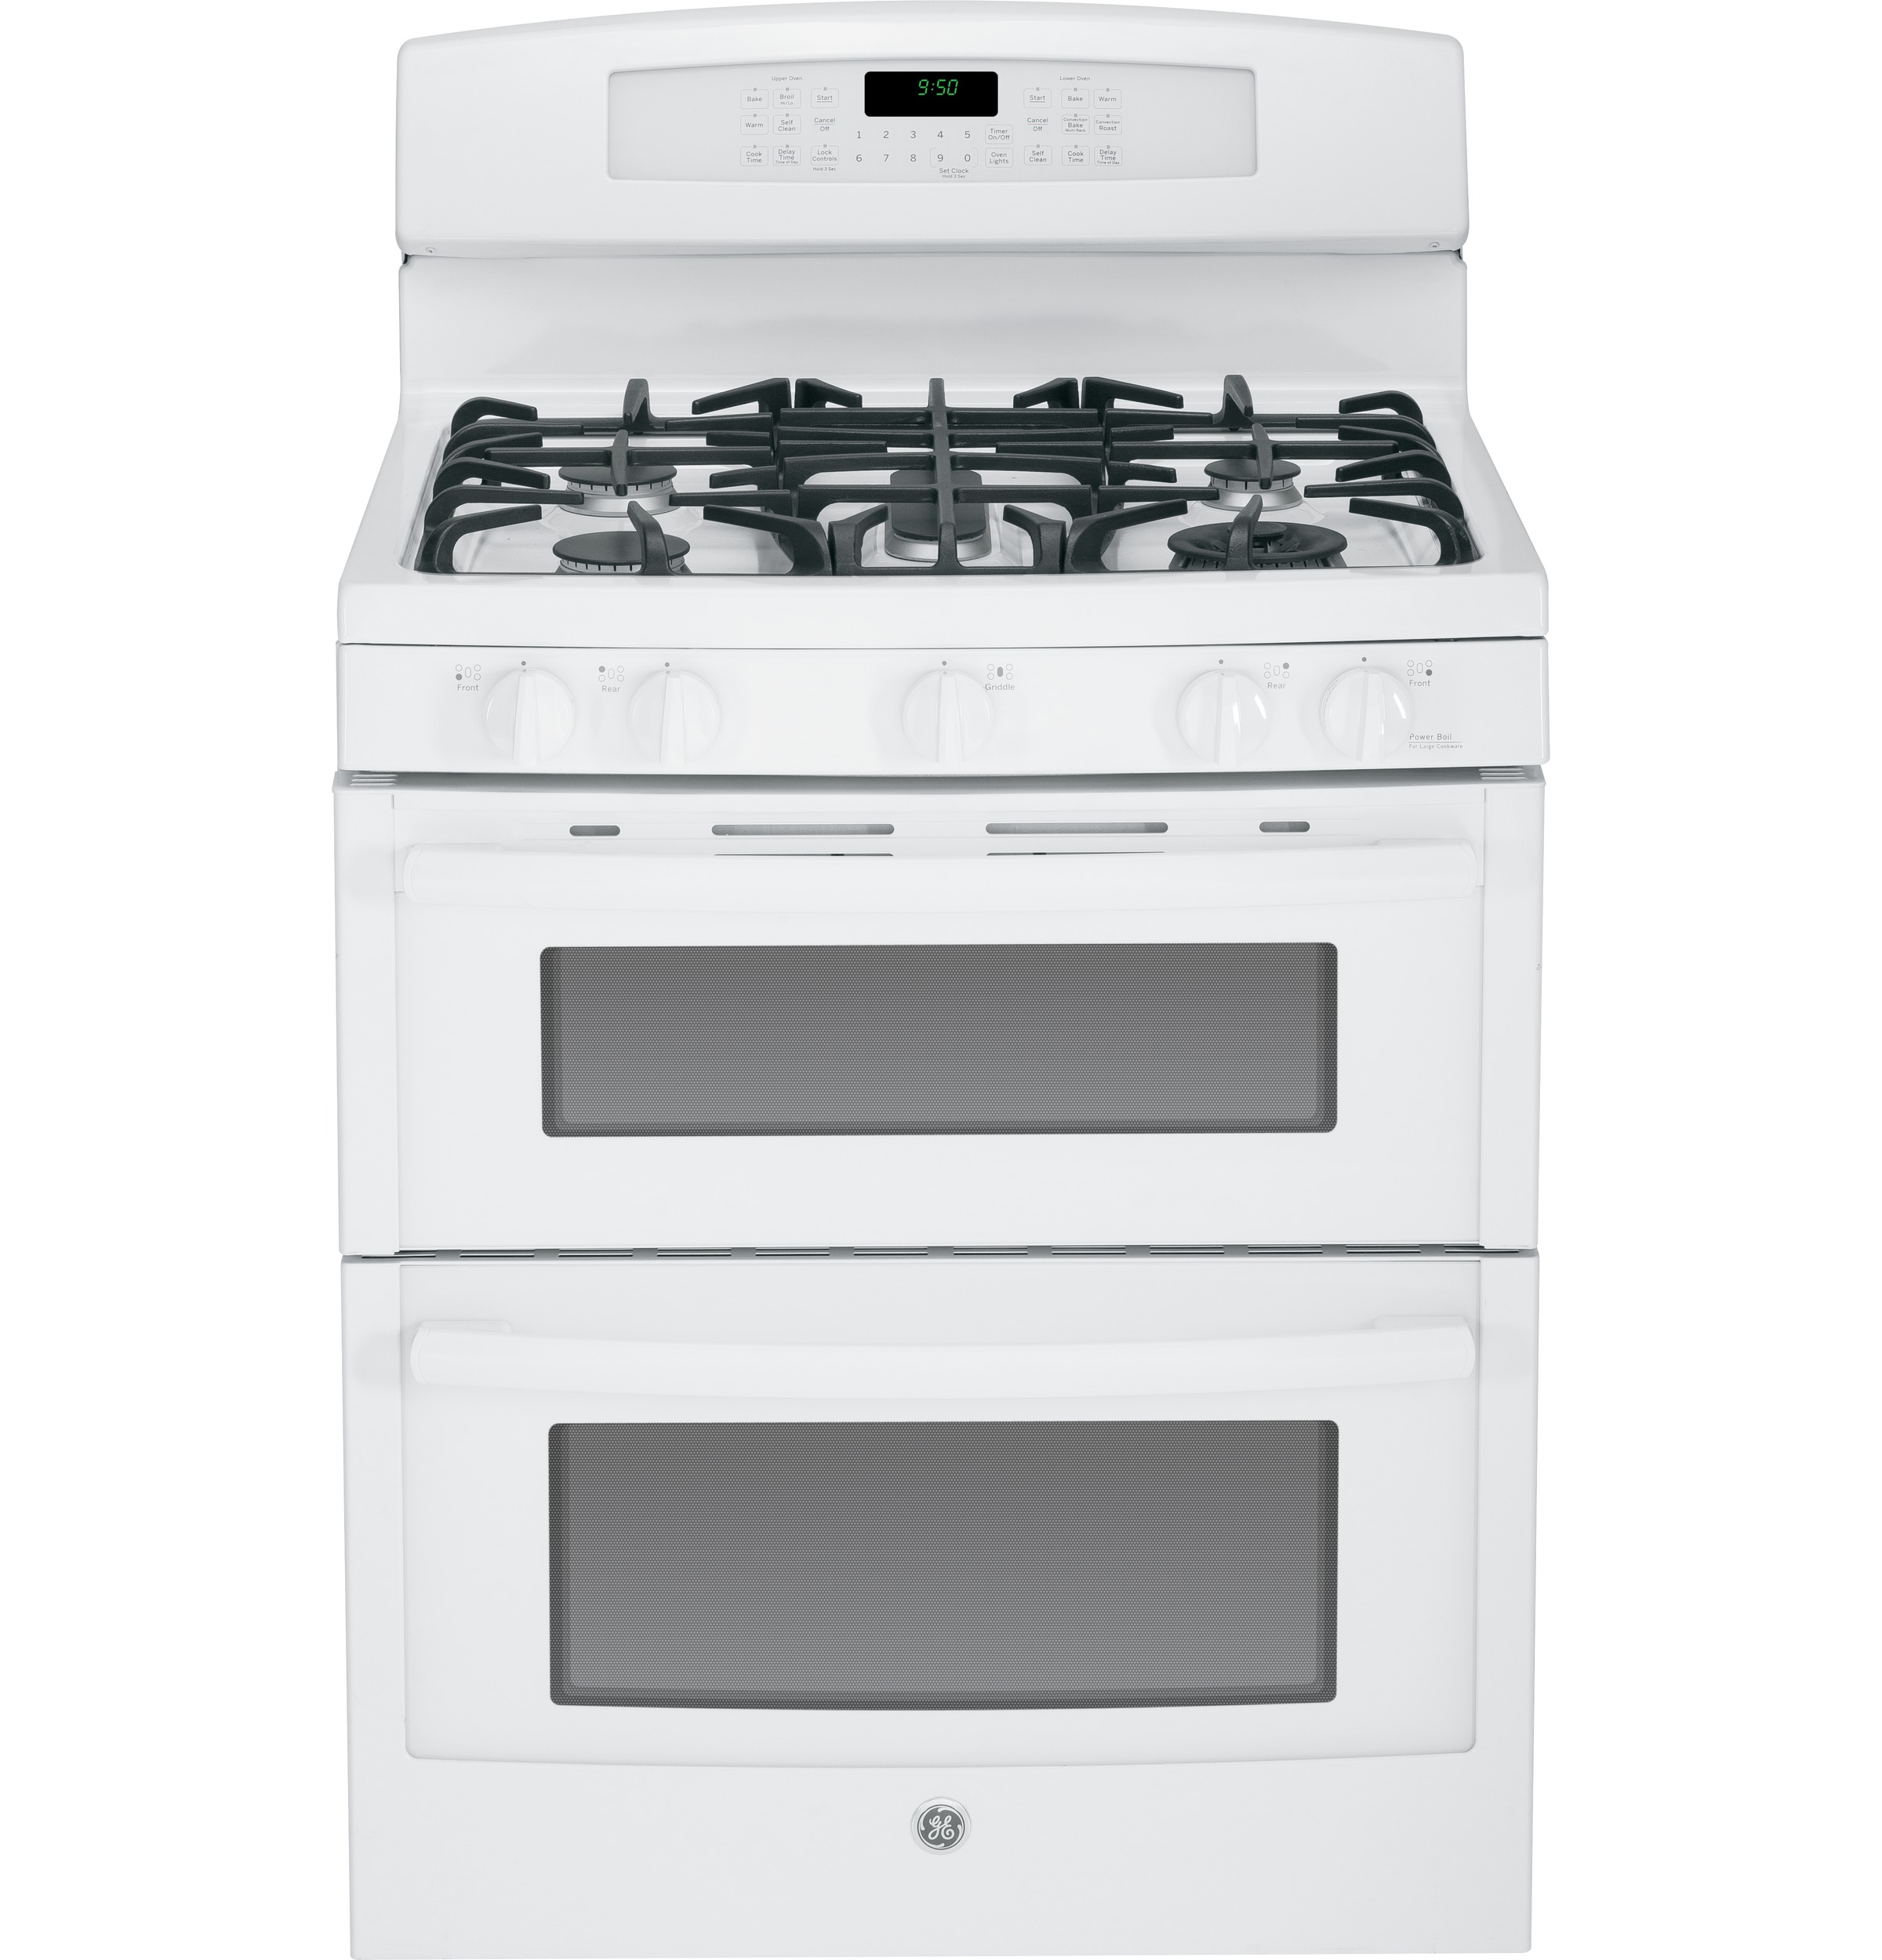 Ge Profile Oven Pictures